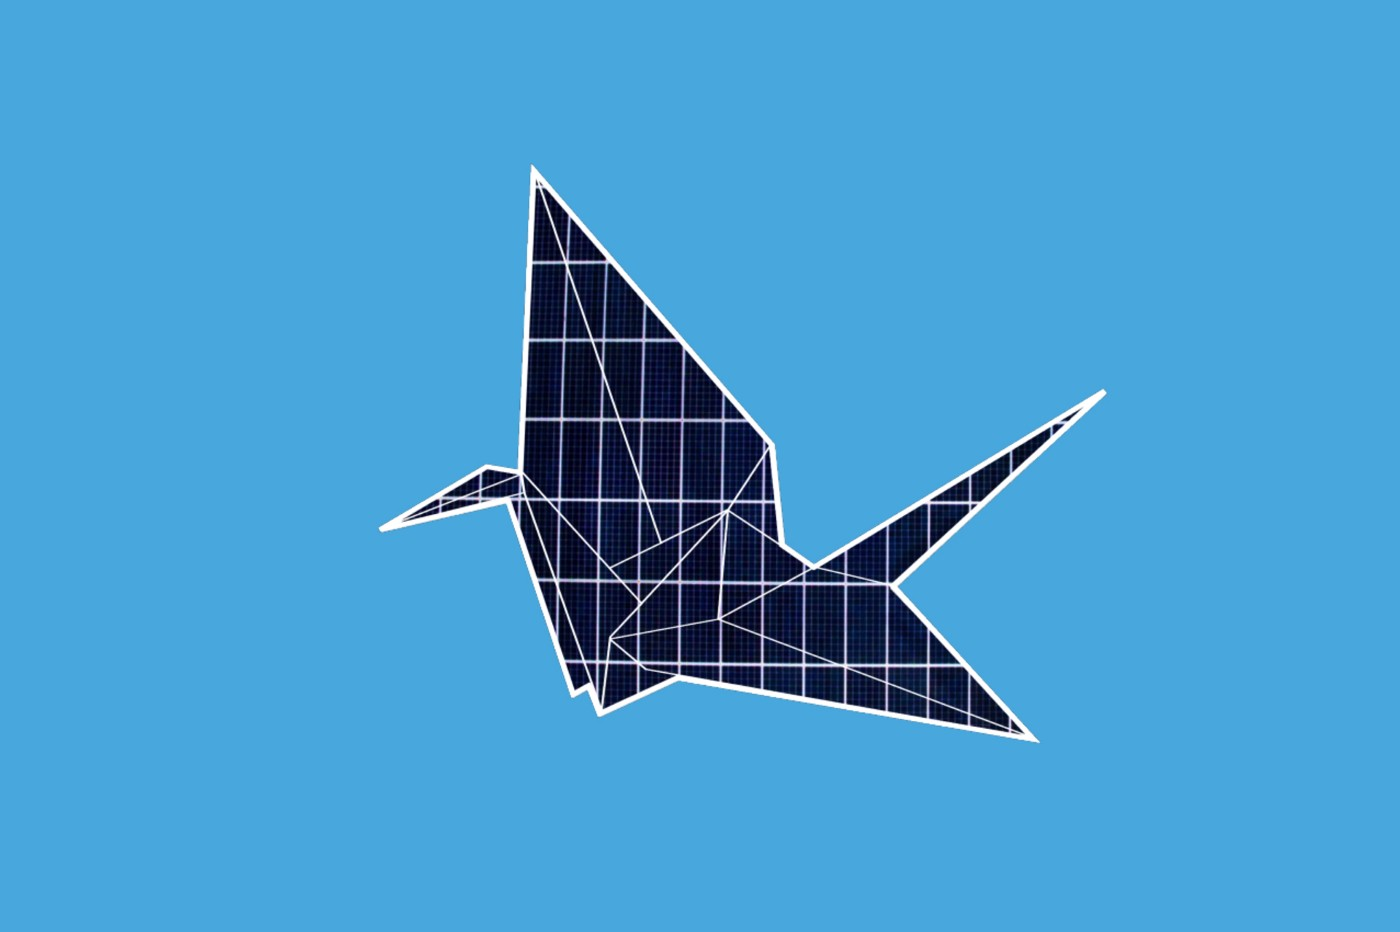 An origami crane made out of solar panels on a blue background.